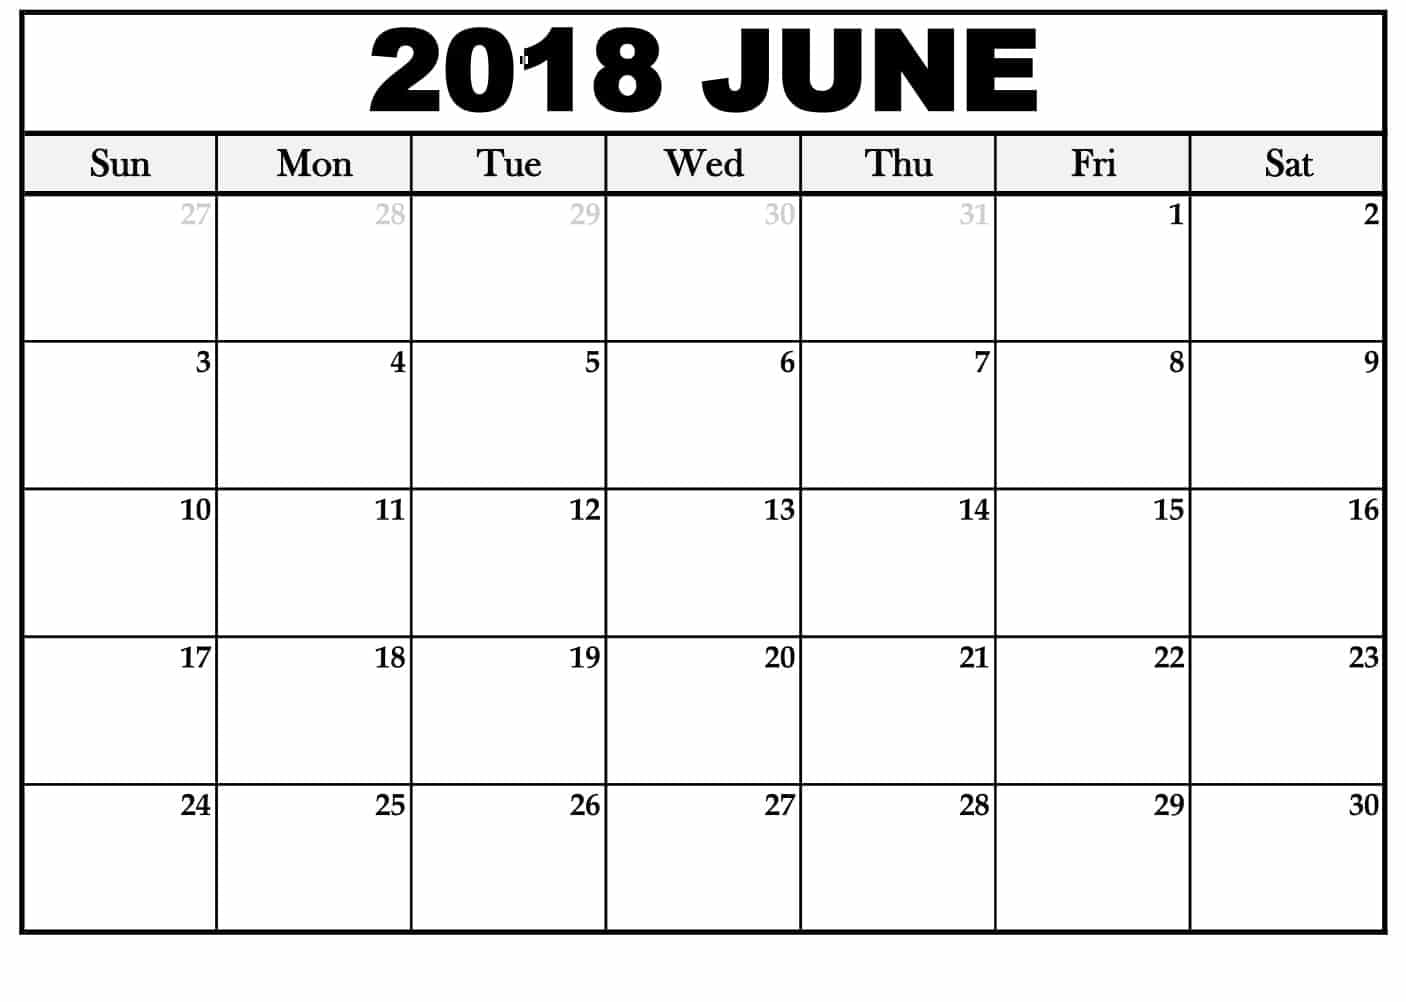 June Calendar Editable : June calendar editable wall and desk calendar free hd images